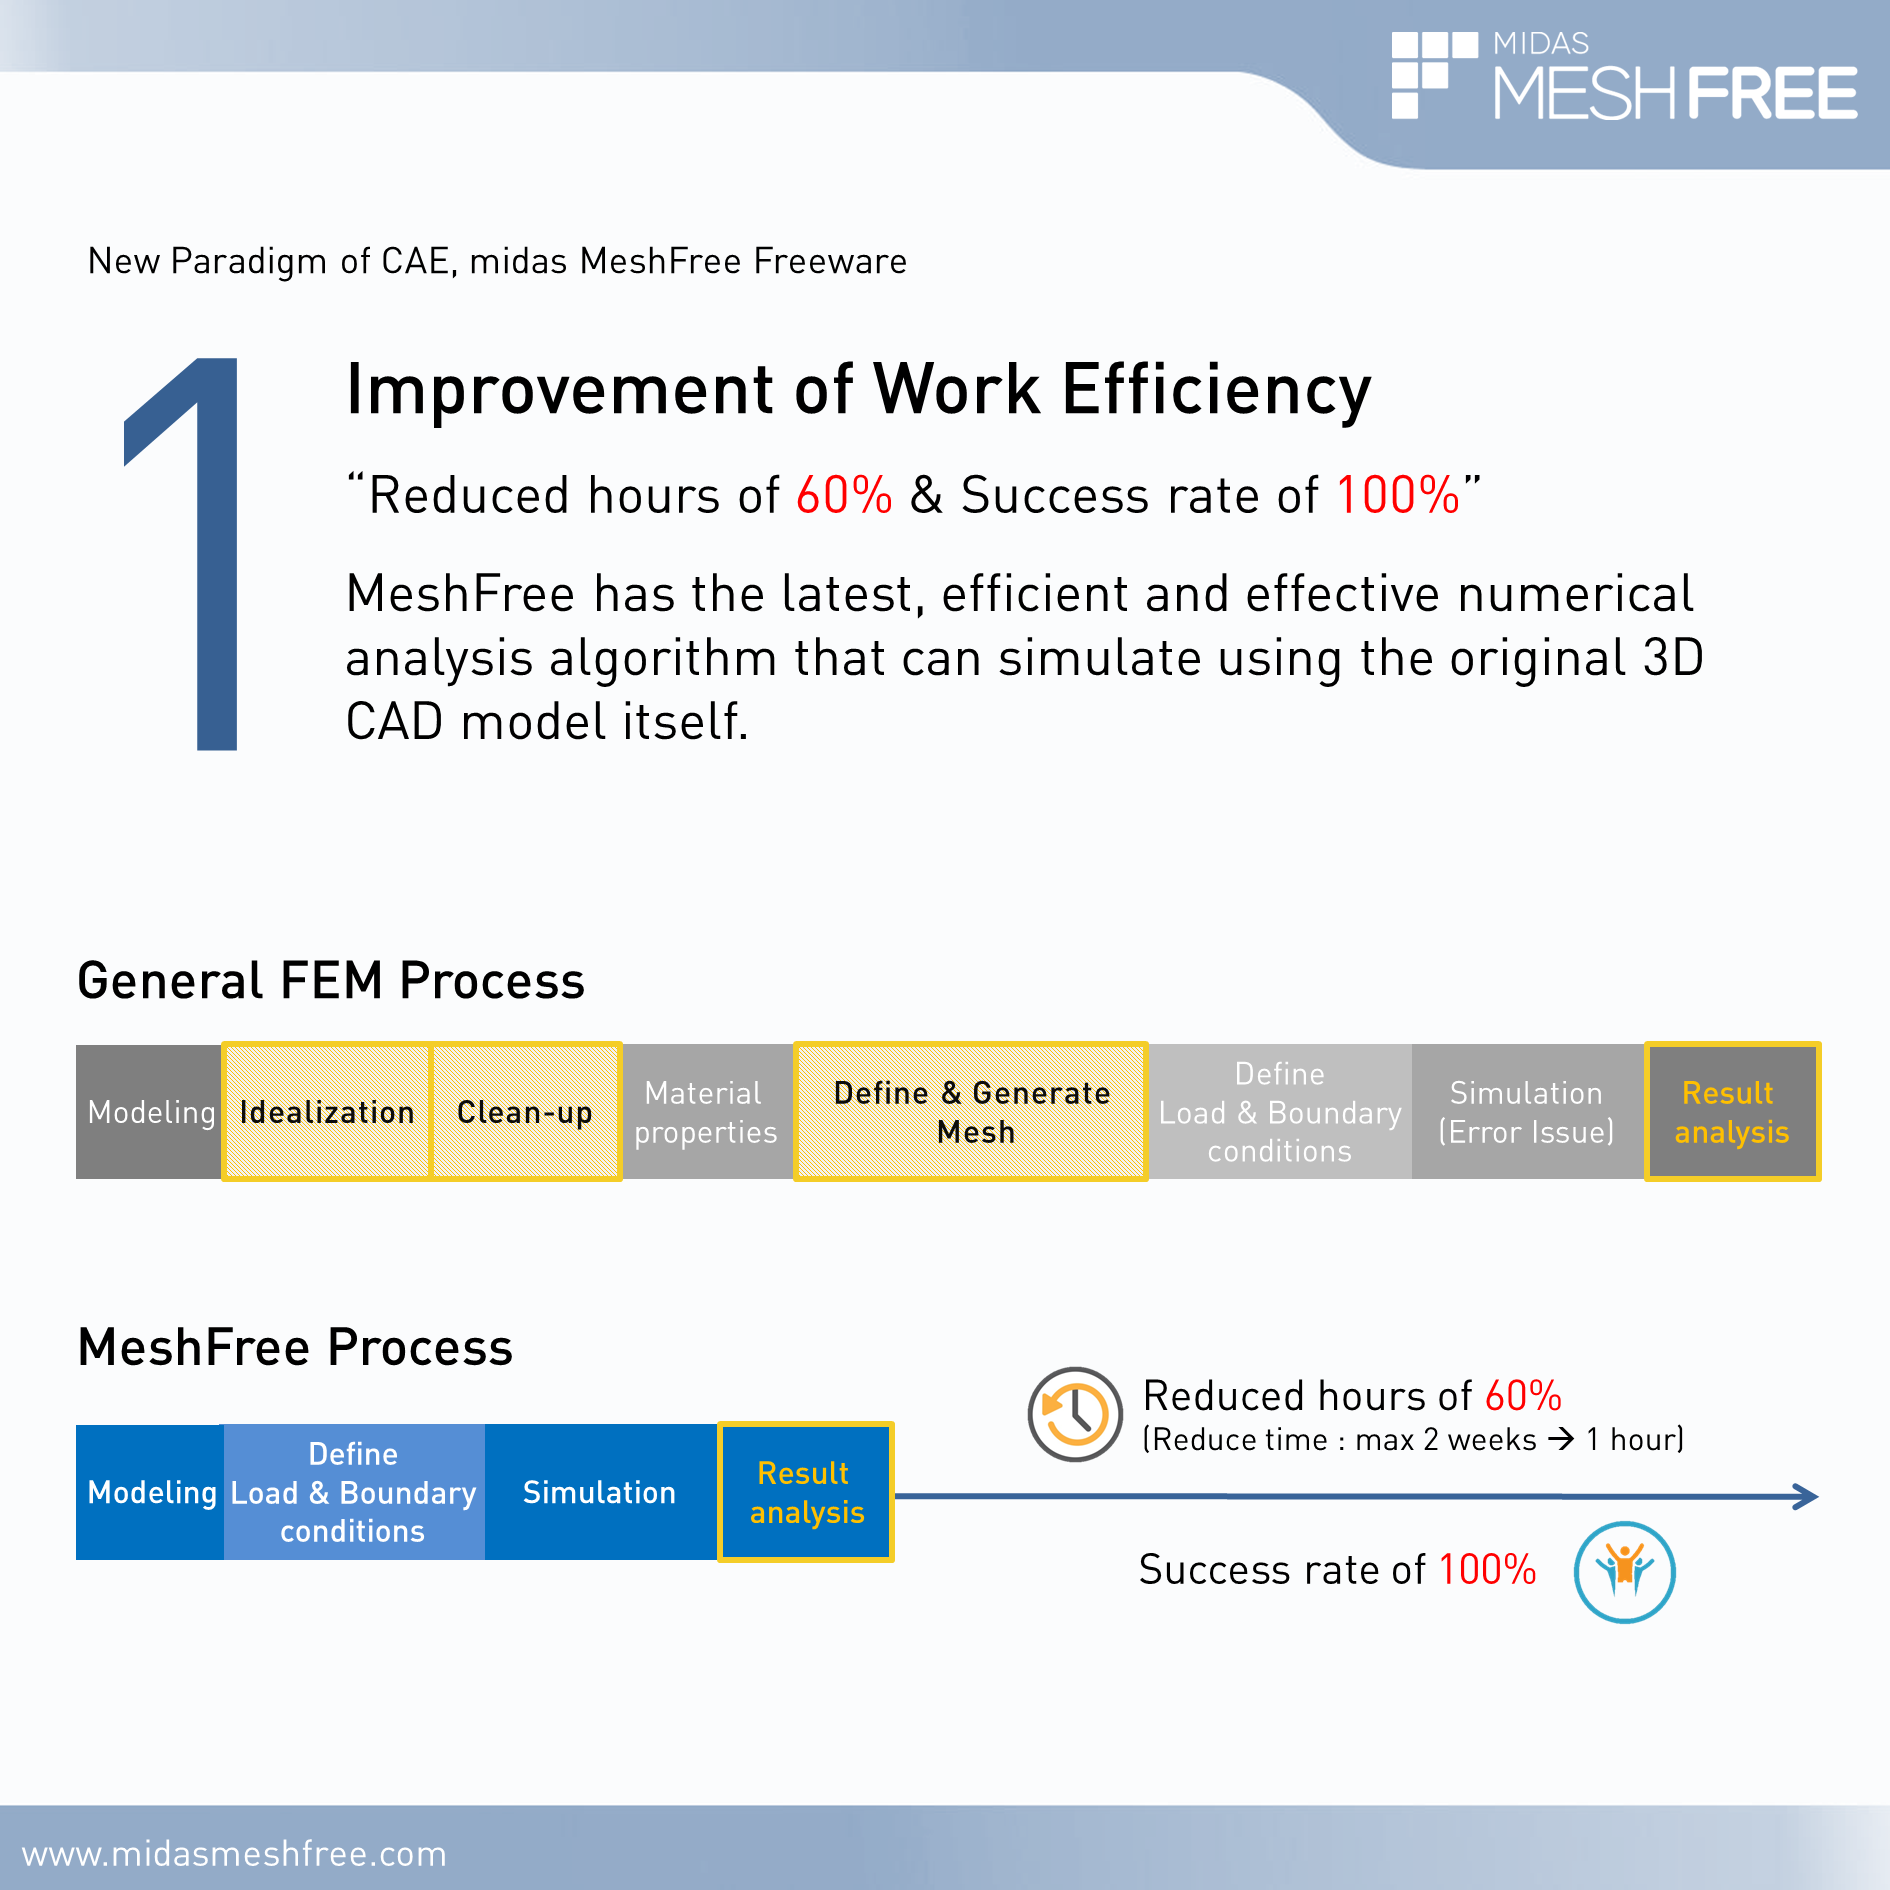 1. Improvement of Work Efficiency by MeshFree (Slide 2)